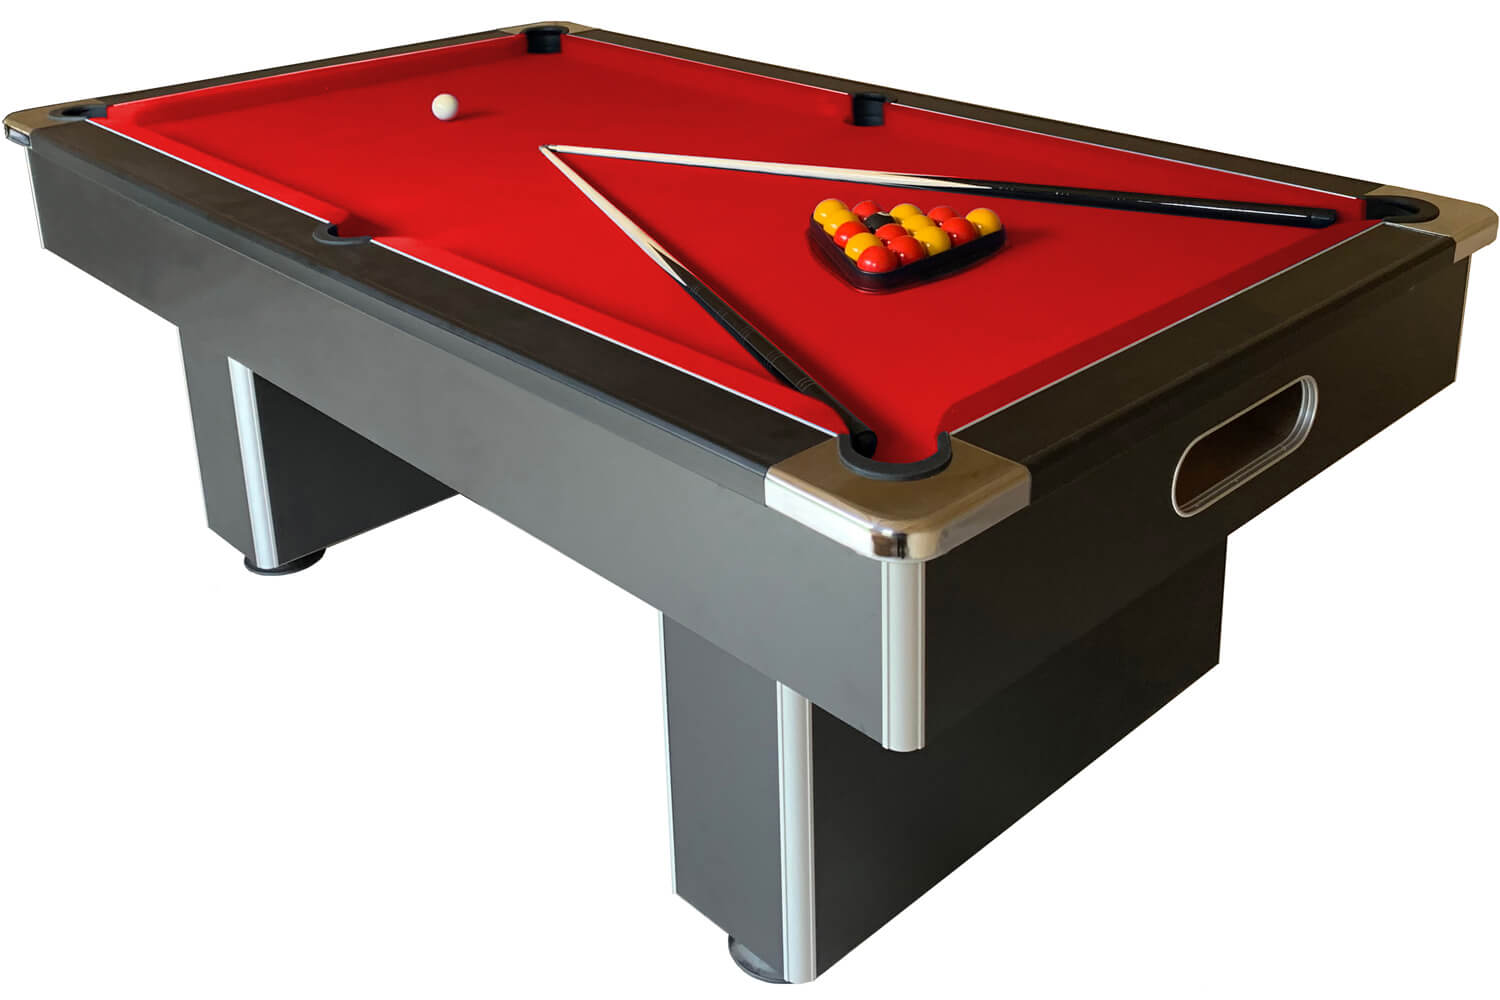 slimline slate bed pool table finish black cloth colour red for sale cape town townsville